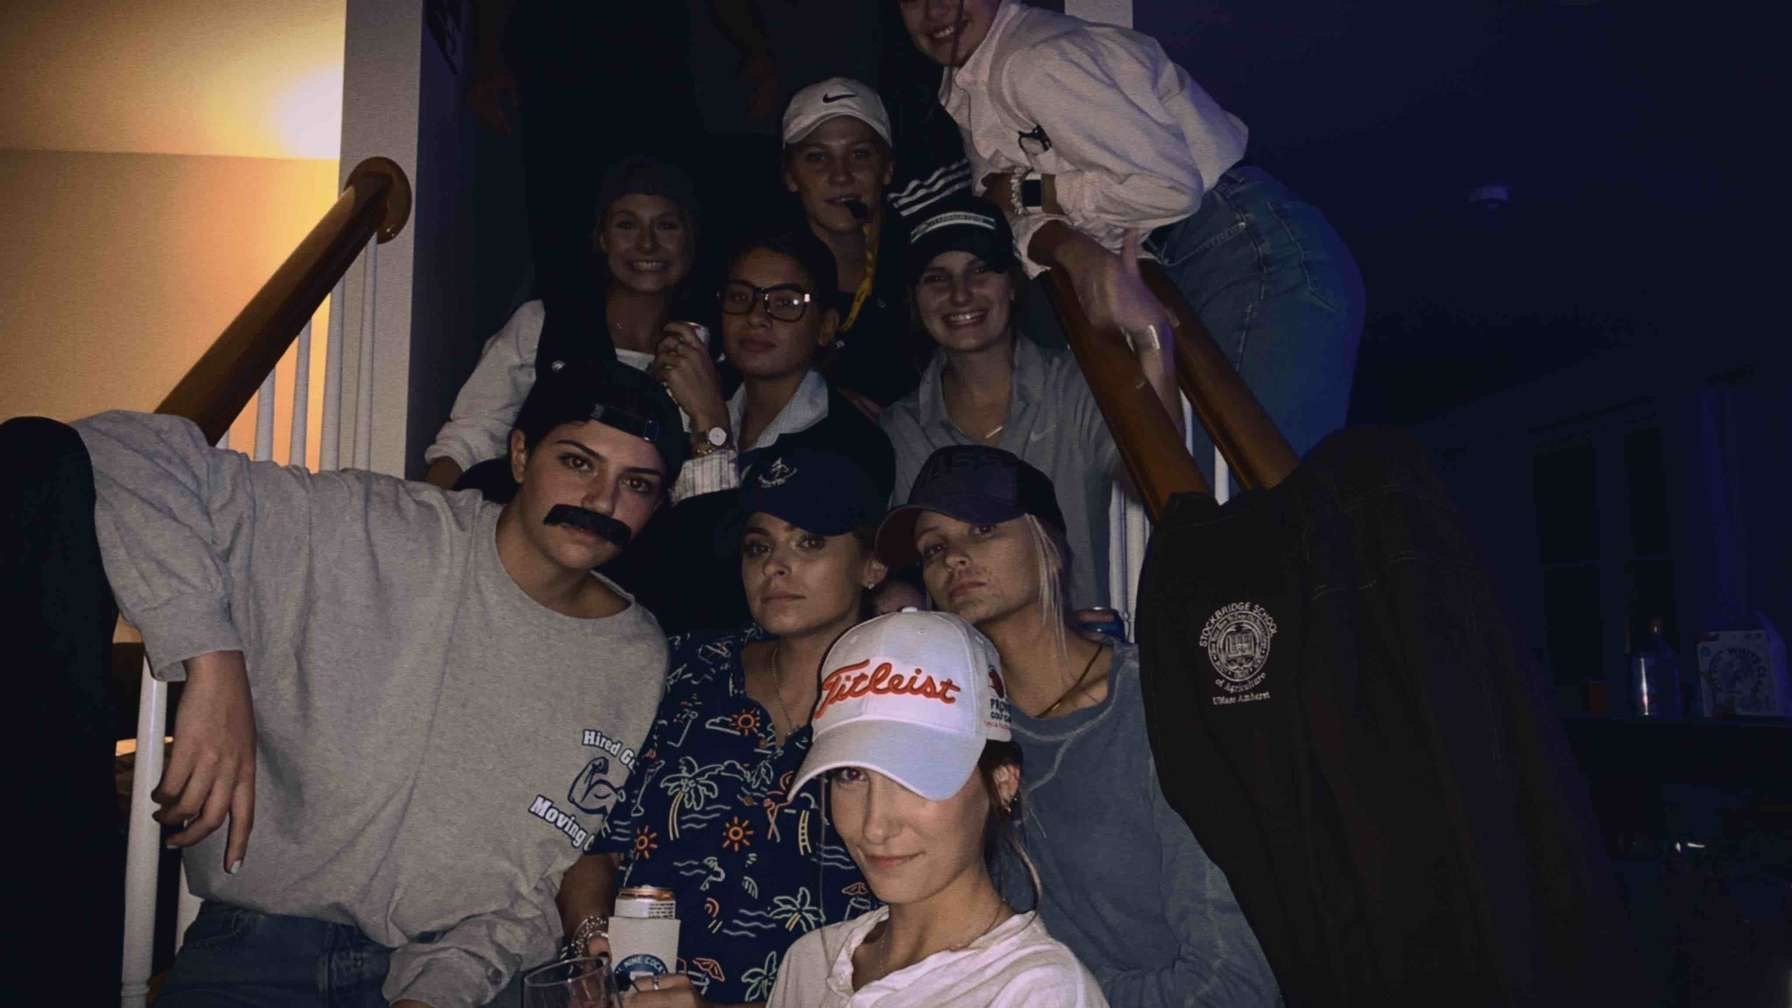 Friends dressed up as their dad's.